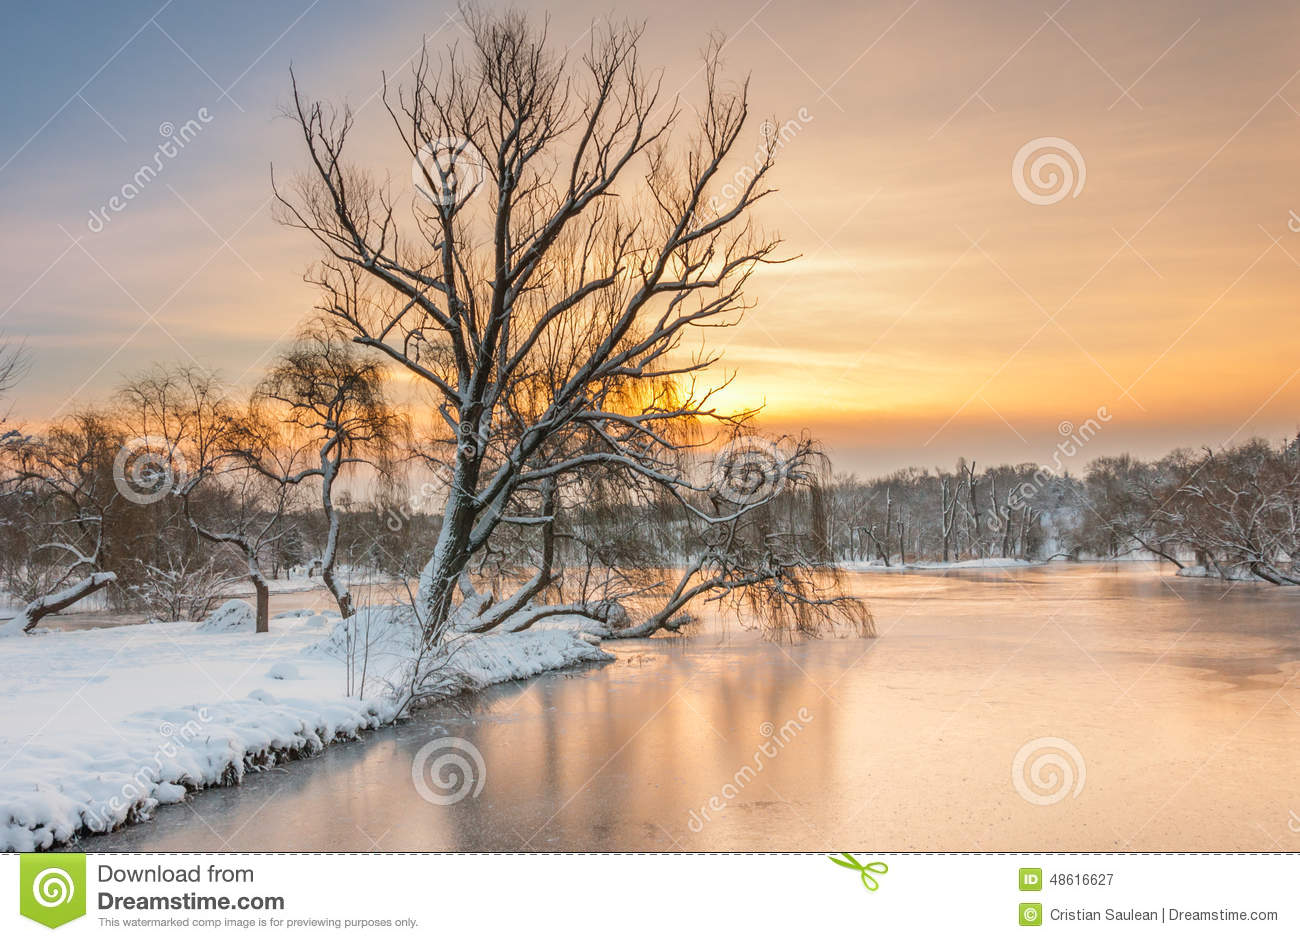 Download Colorful Landscape At The Winter Sunrise In Park Stock Image - Image of color, bright: 48616627